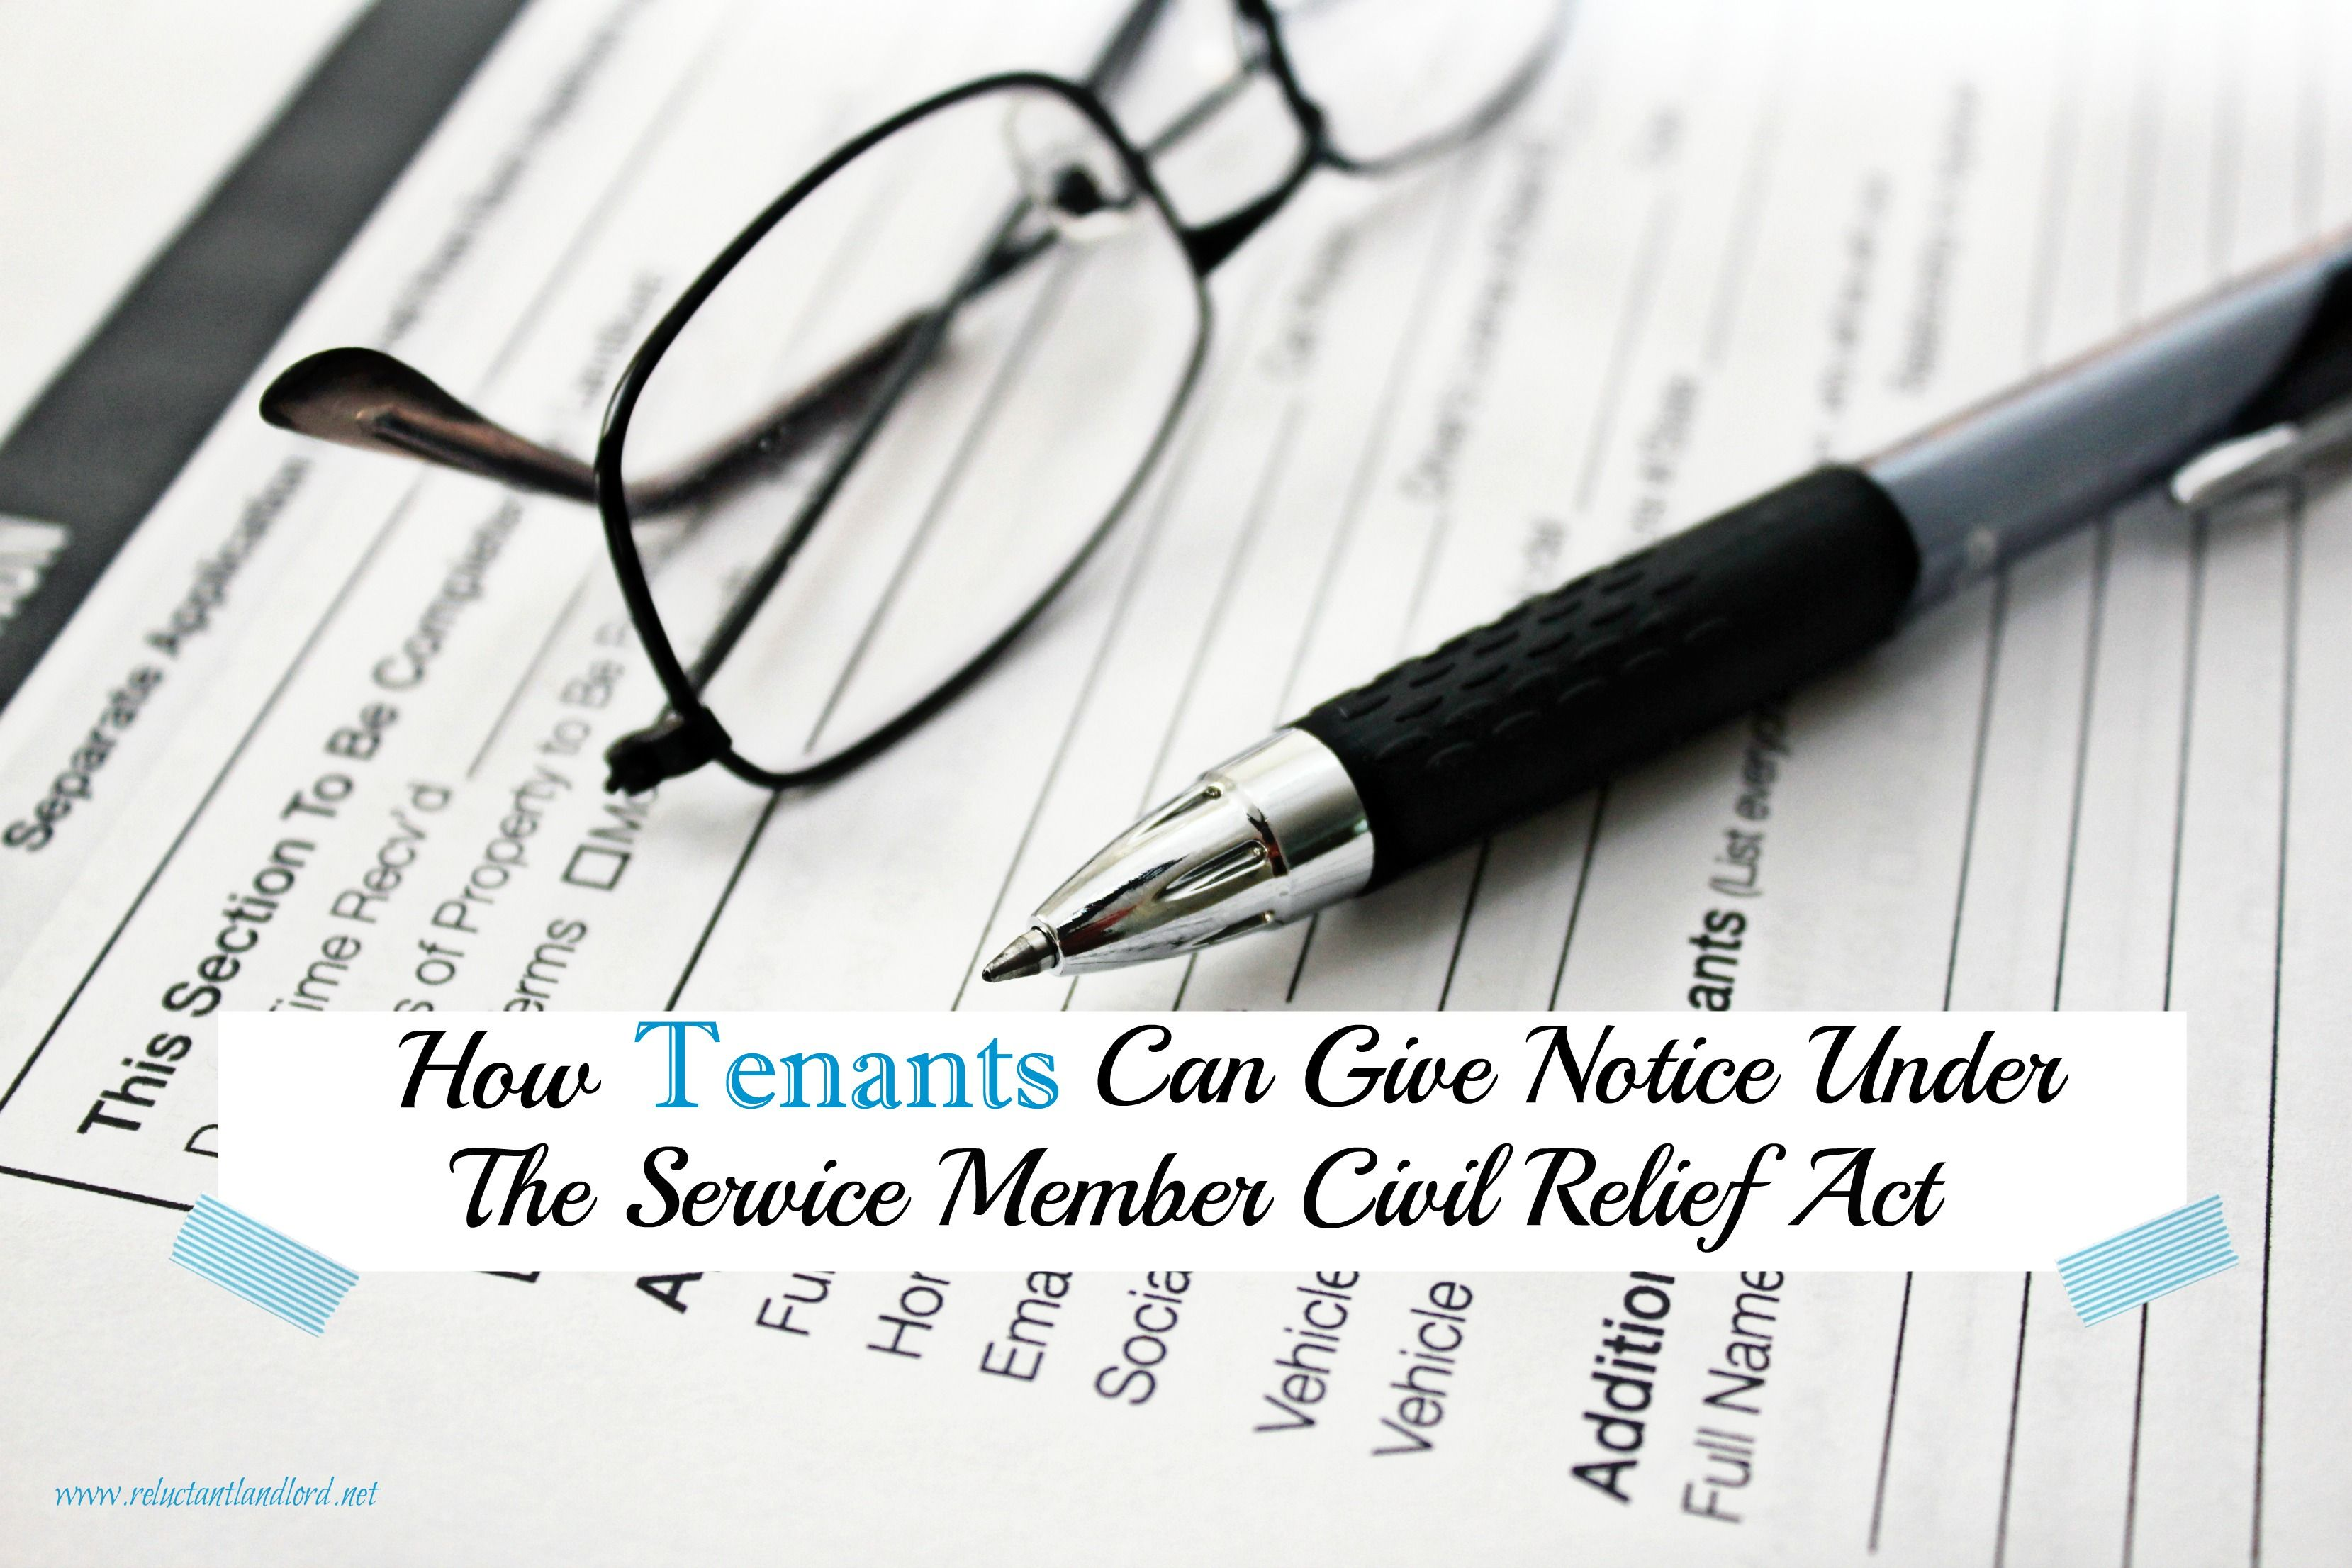 How tenants can give notice under the service member civil